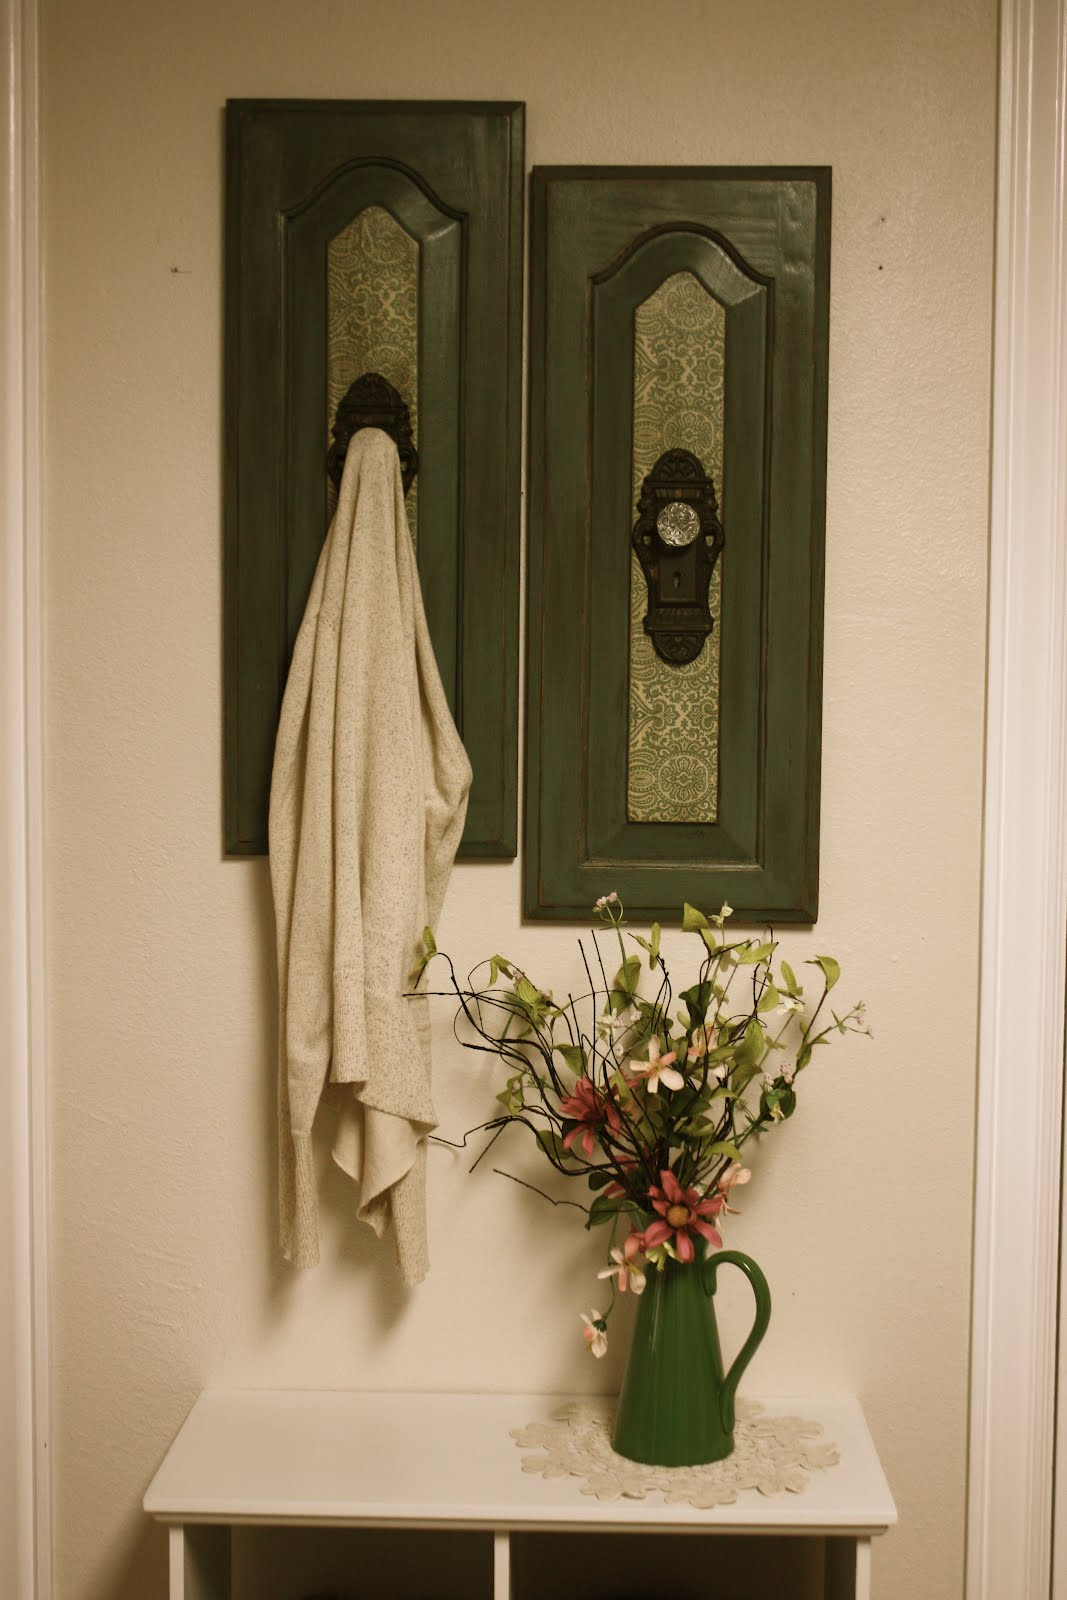 At Home Green Wall Hanging With Antique Door Knob